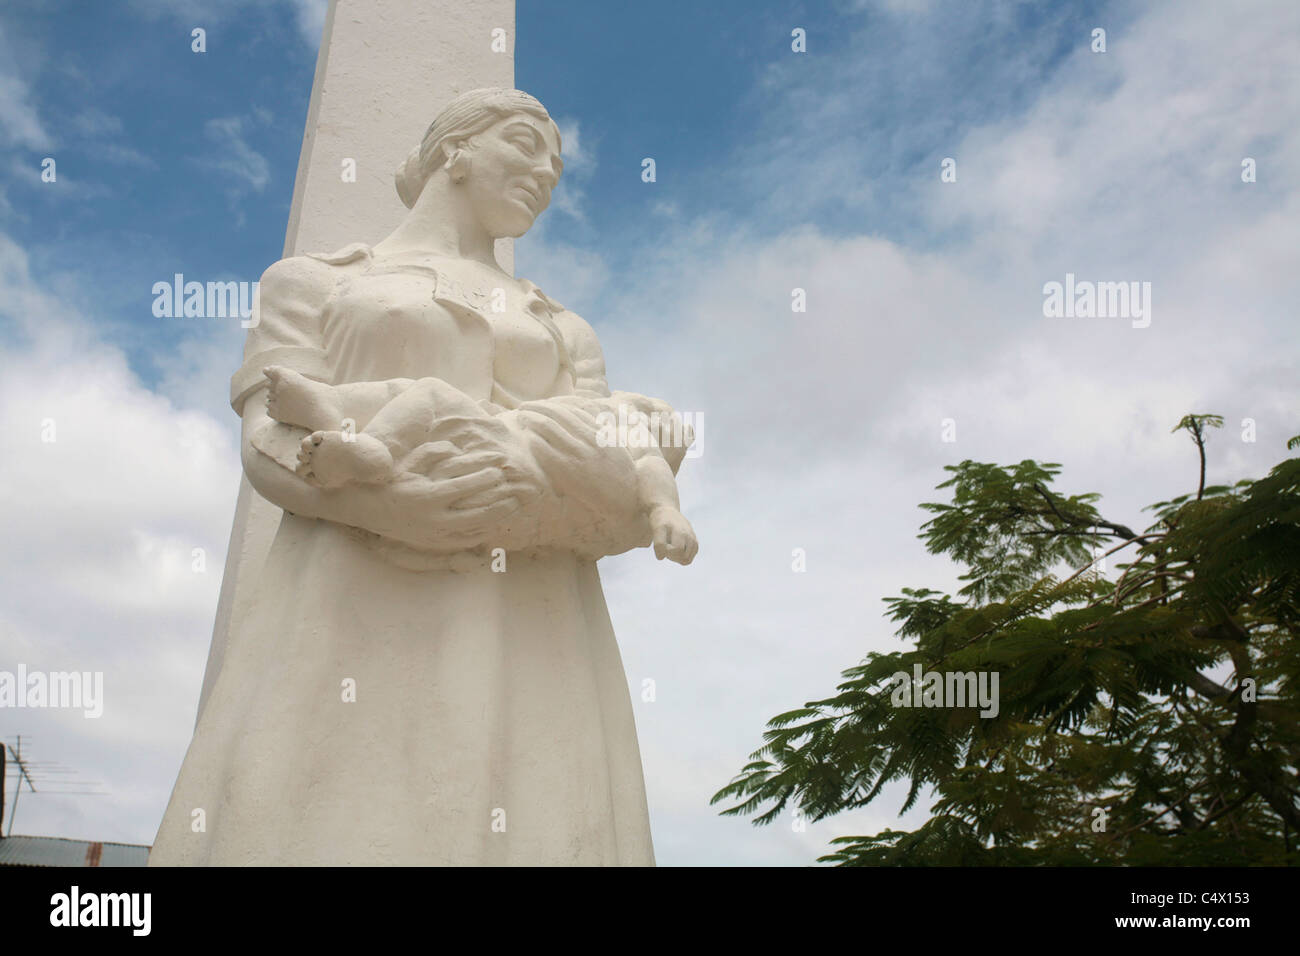 Monument dedicated to motherhood in Penonome town of Cocle, Panama, Central America. - Stock Image